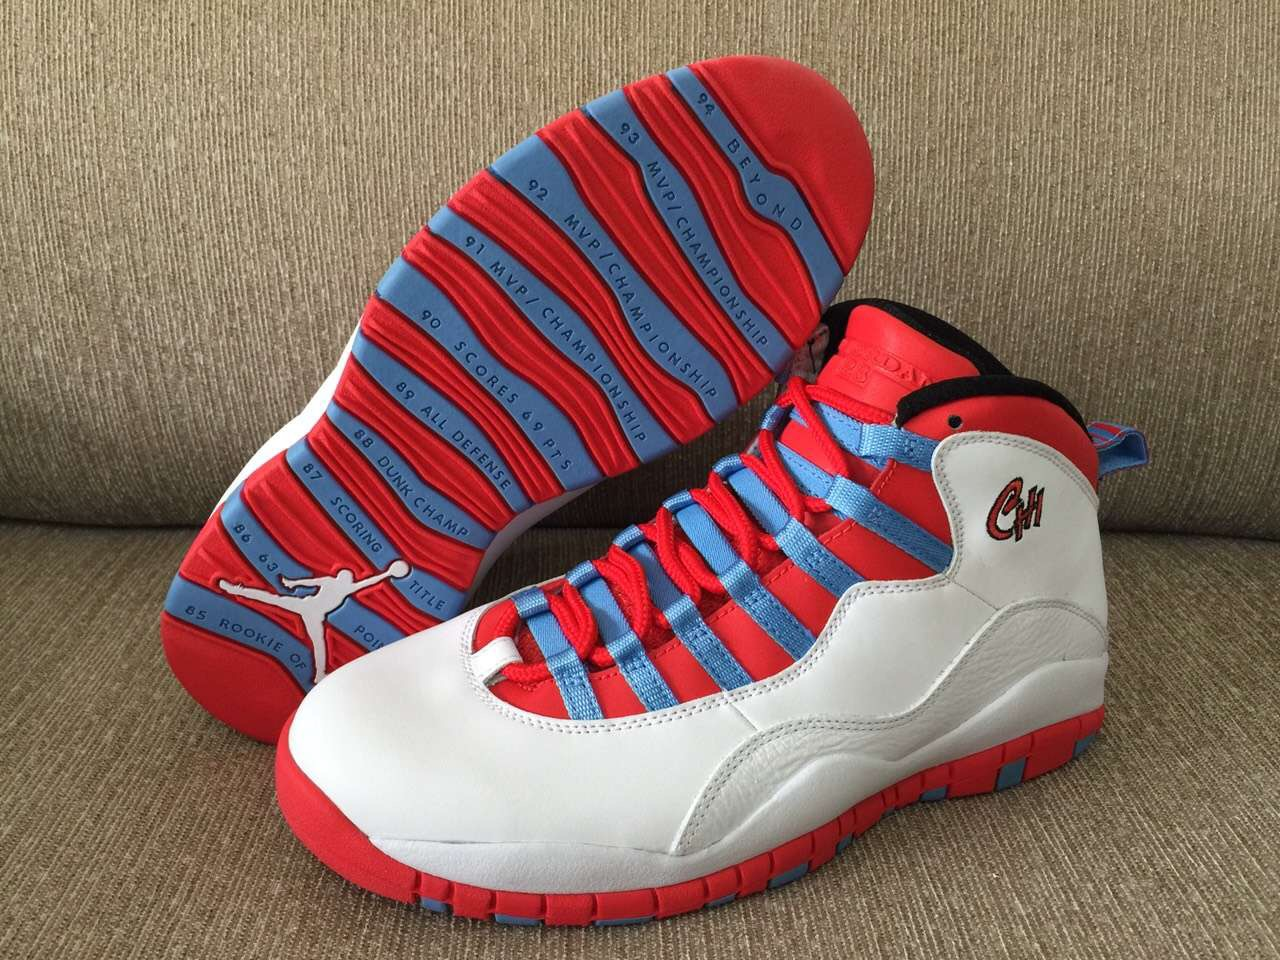 8728ce9bf28 Air Jordan 10 Retro 'Chicago' Inspired By City's Flag | Def Pen